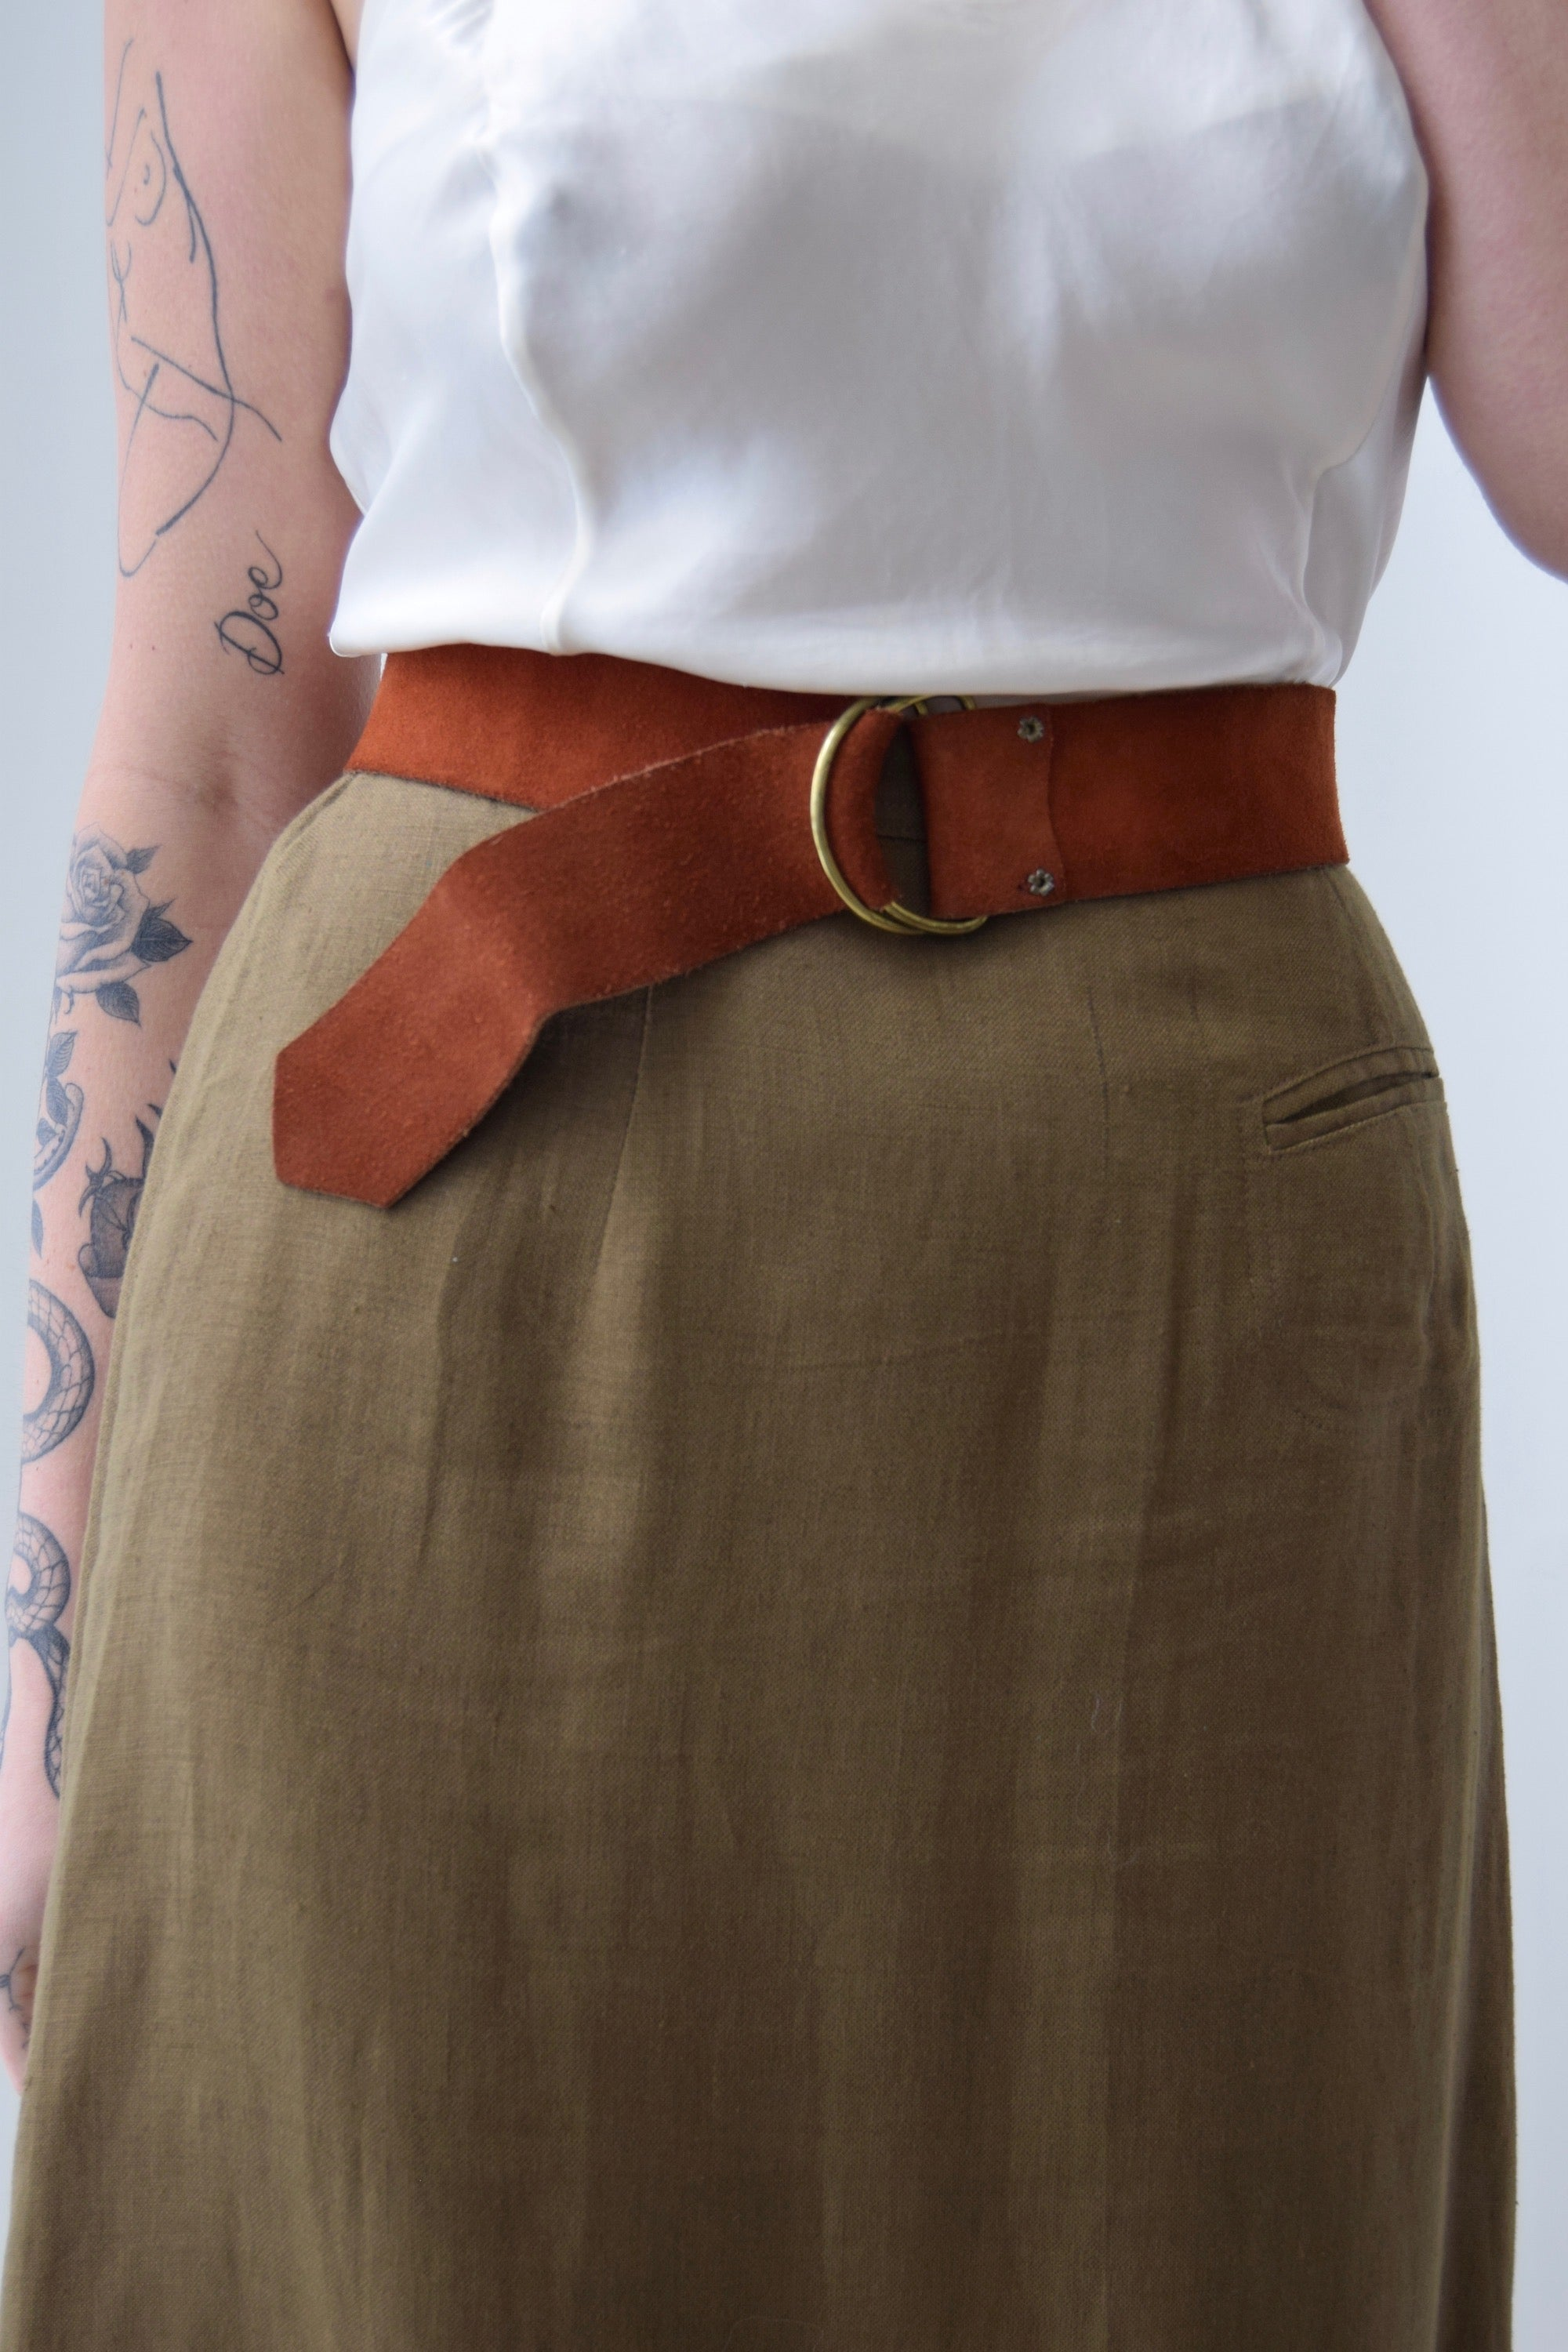 Vintage Cherry Brown Suede D Ring Belt FREE SHIPPING TO THE U.S.